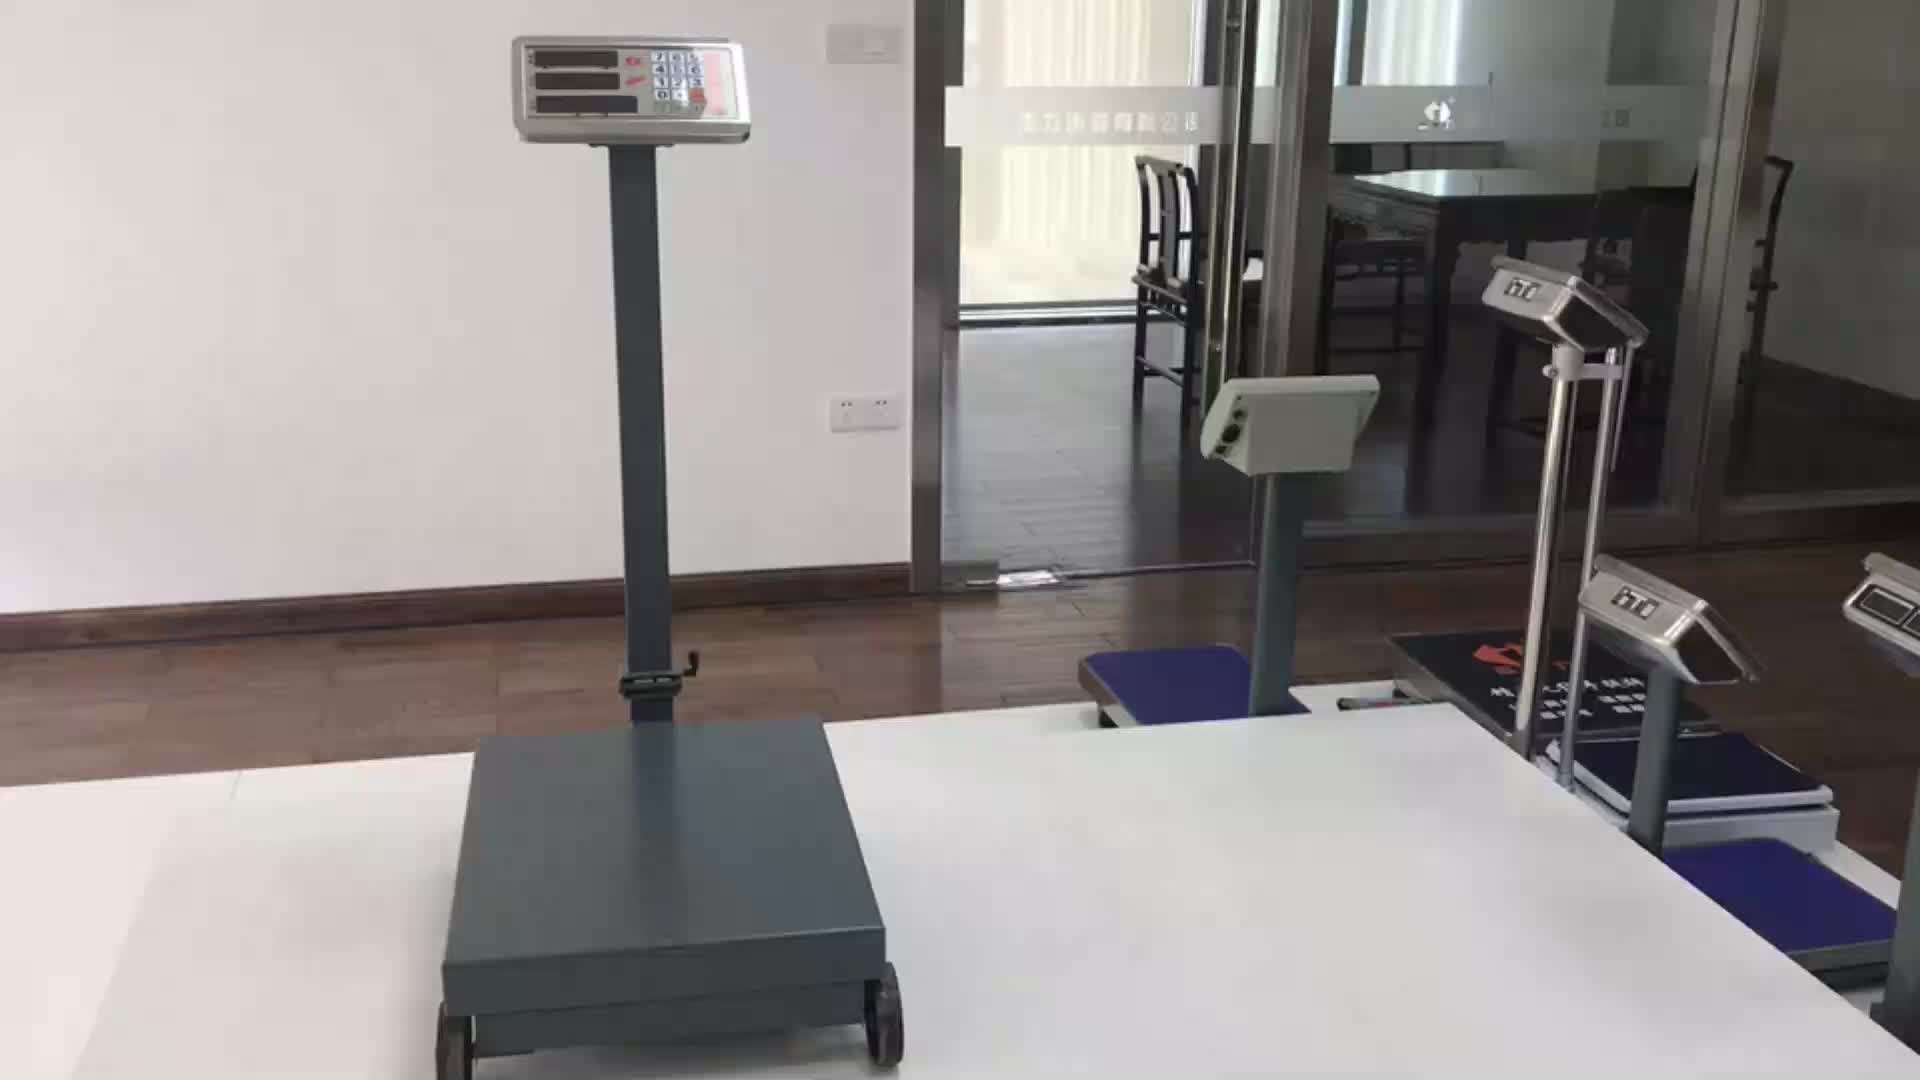 electronic digital commercial platform weighing scale